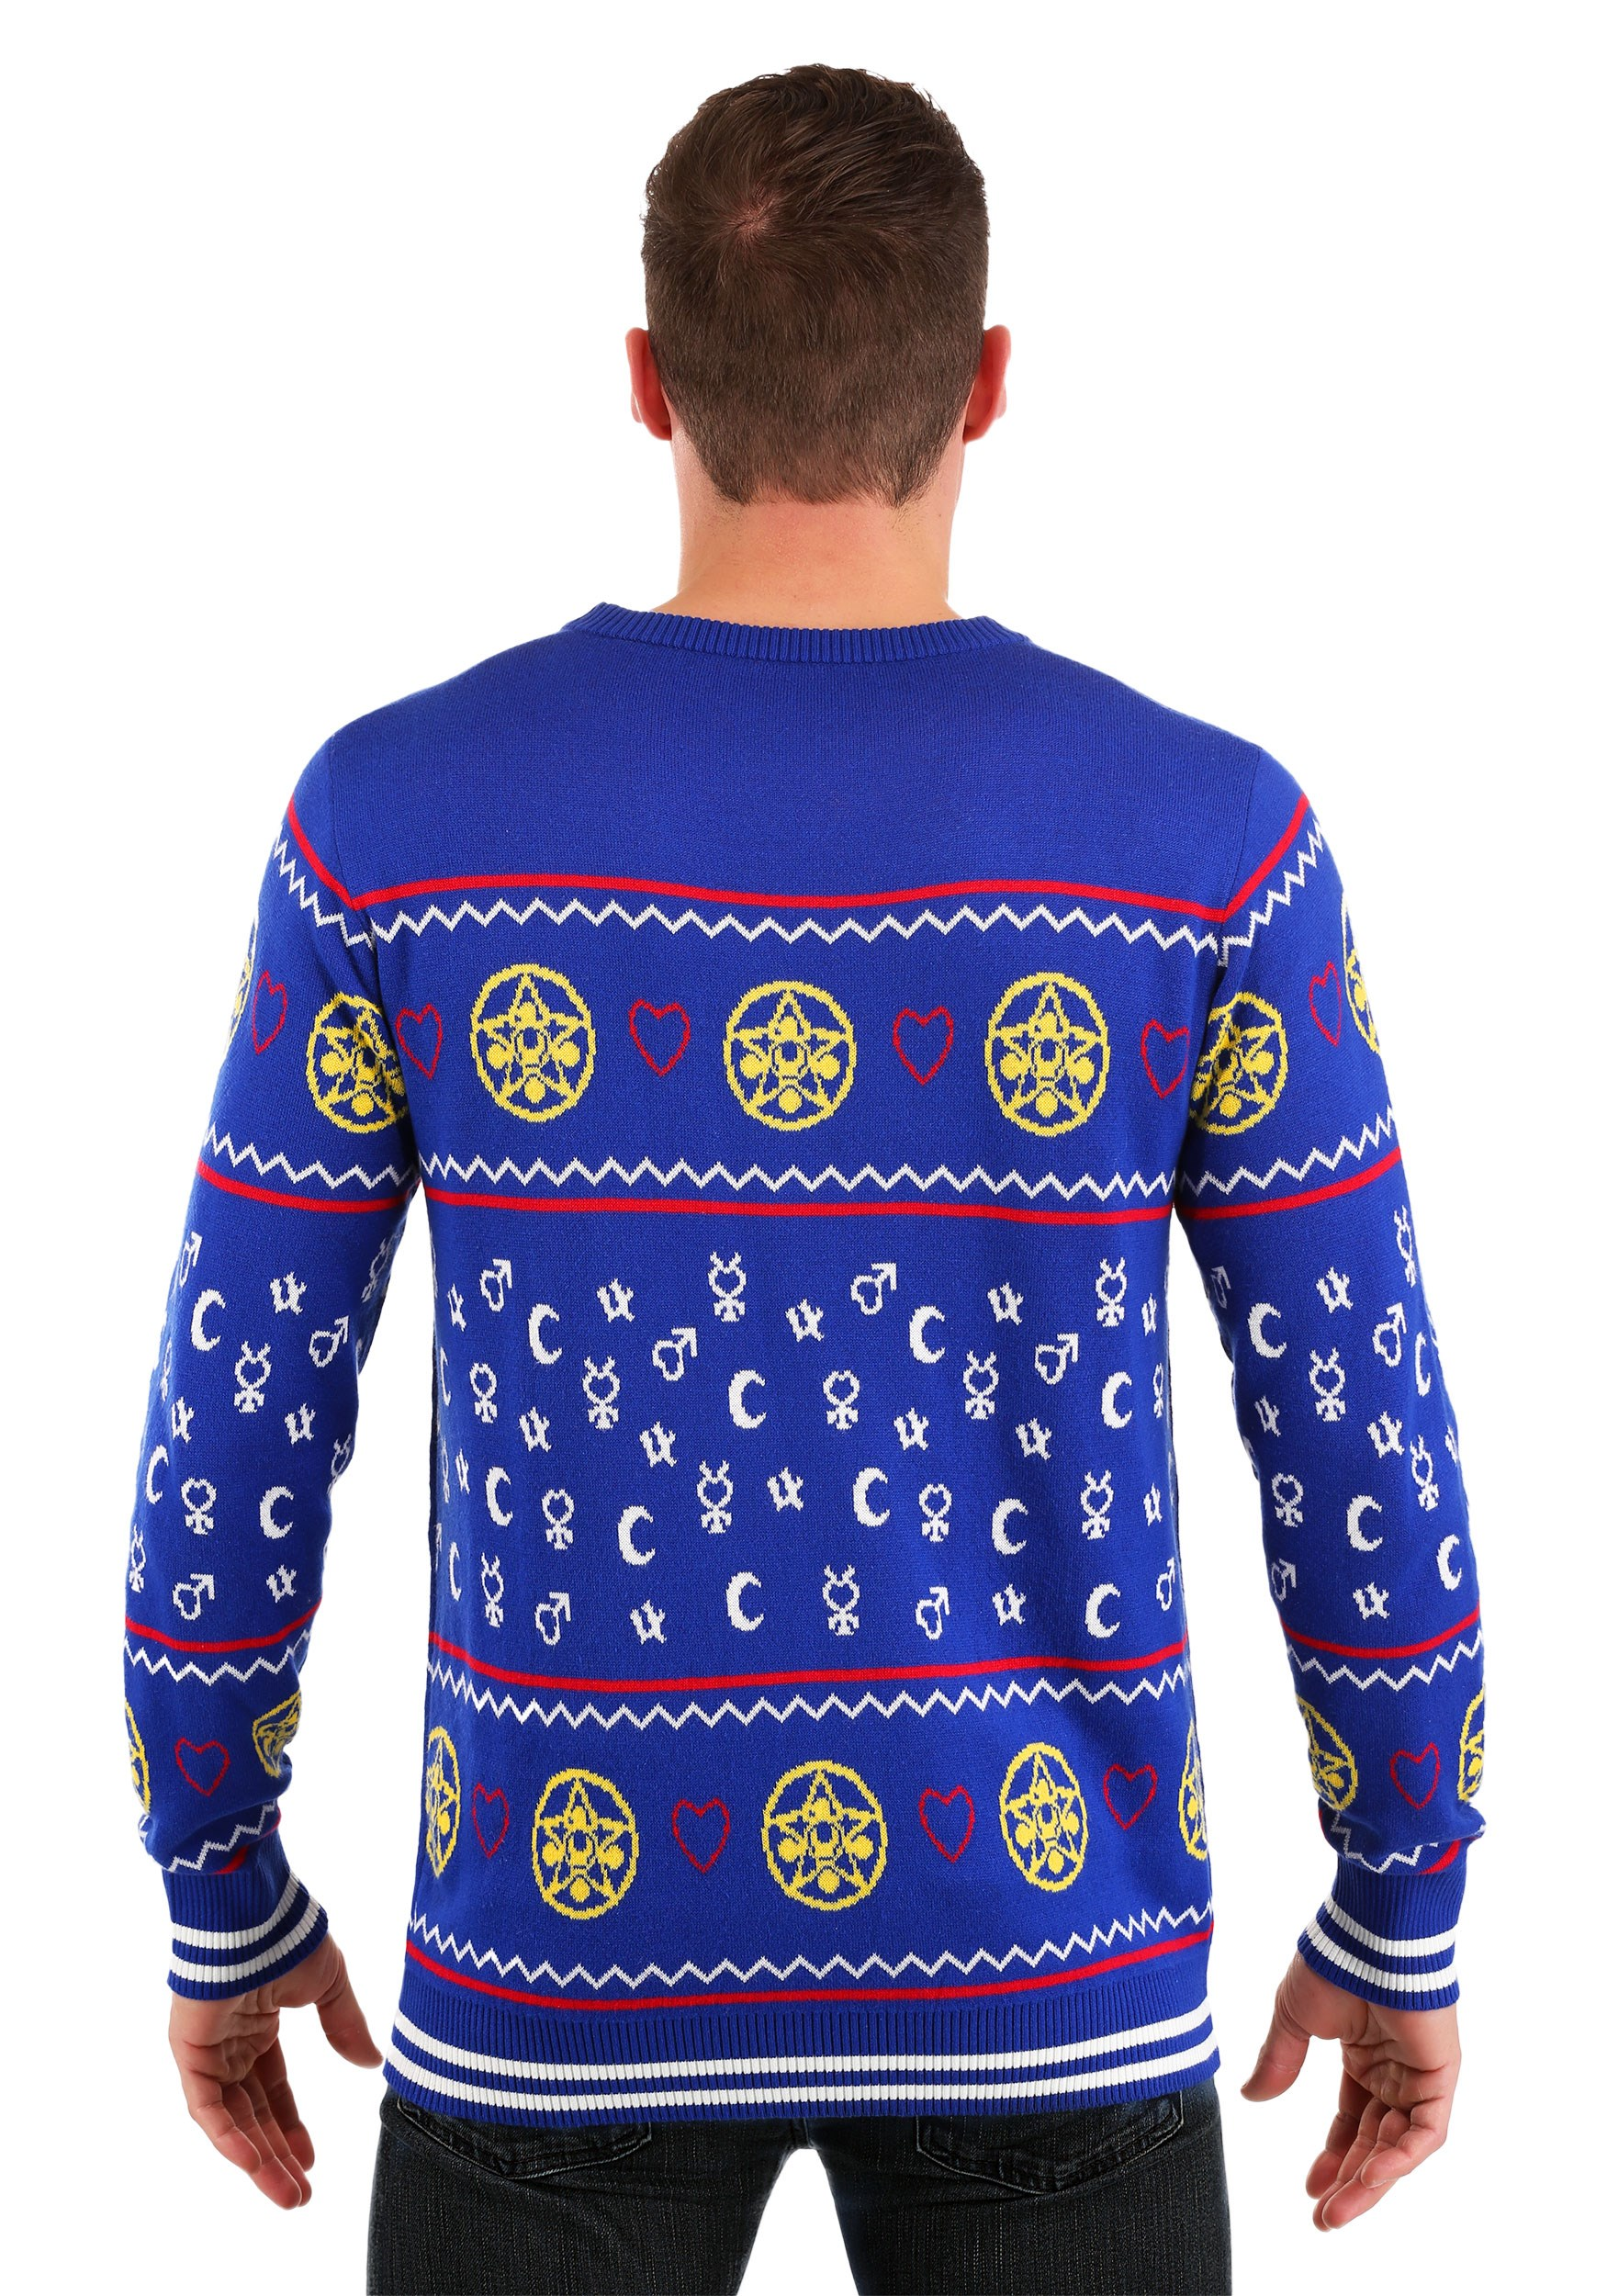 Sailor Moon Fair Isle Ugly Christmas Sweater For Adults